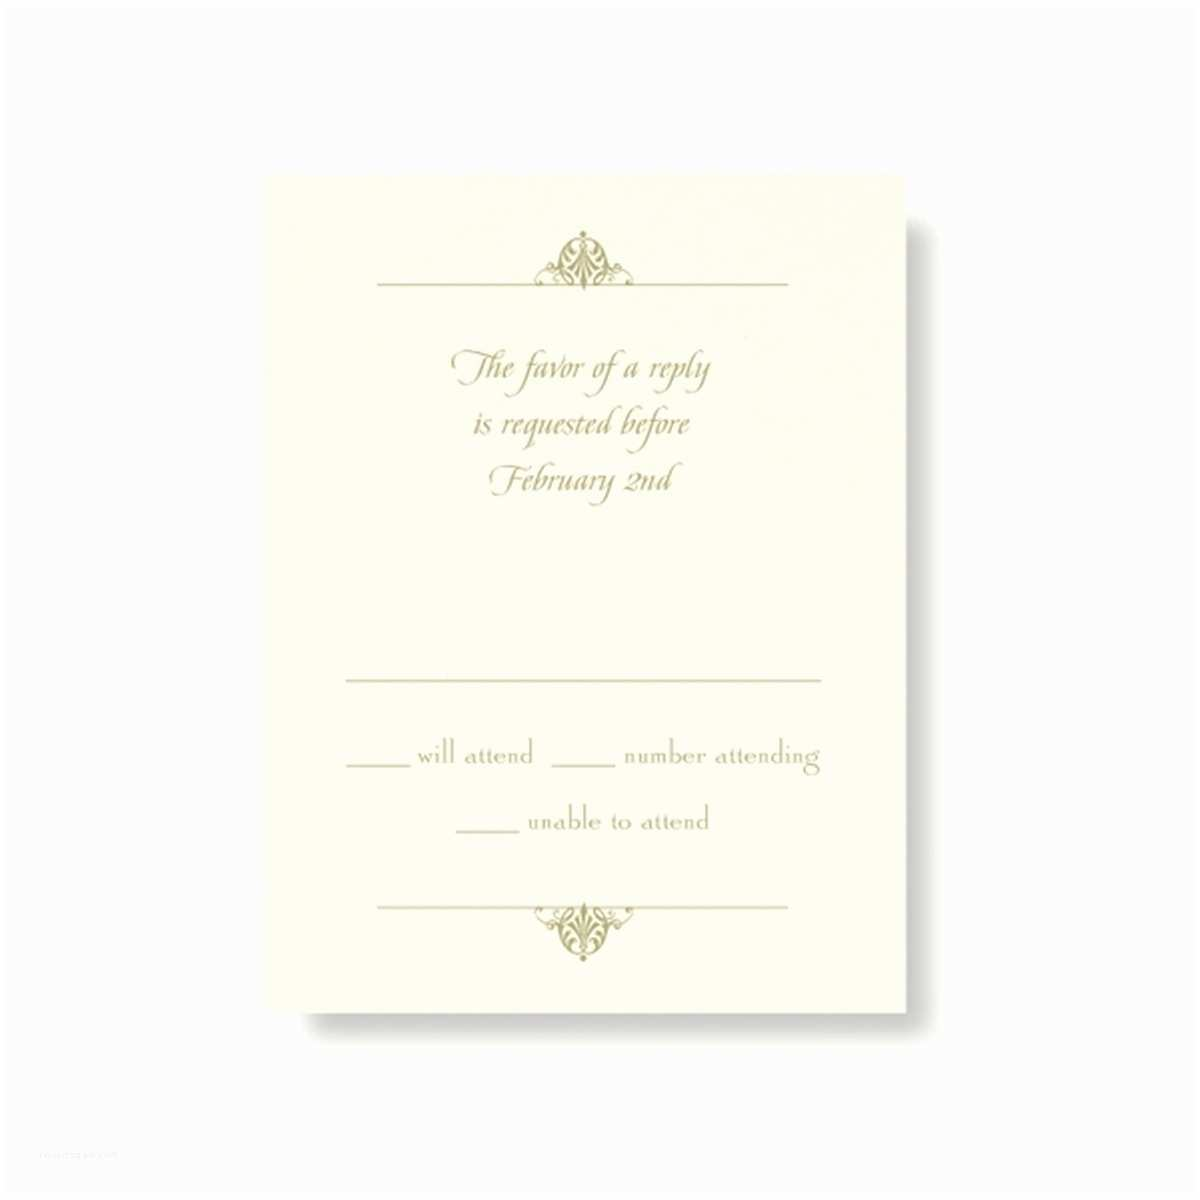 William Arthur Wedding Invitations Wedding Invitations Ireland & Wedding Stationery R